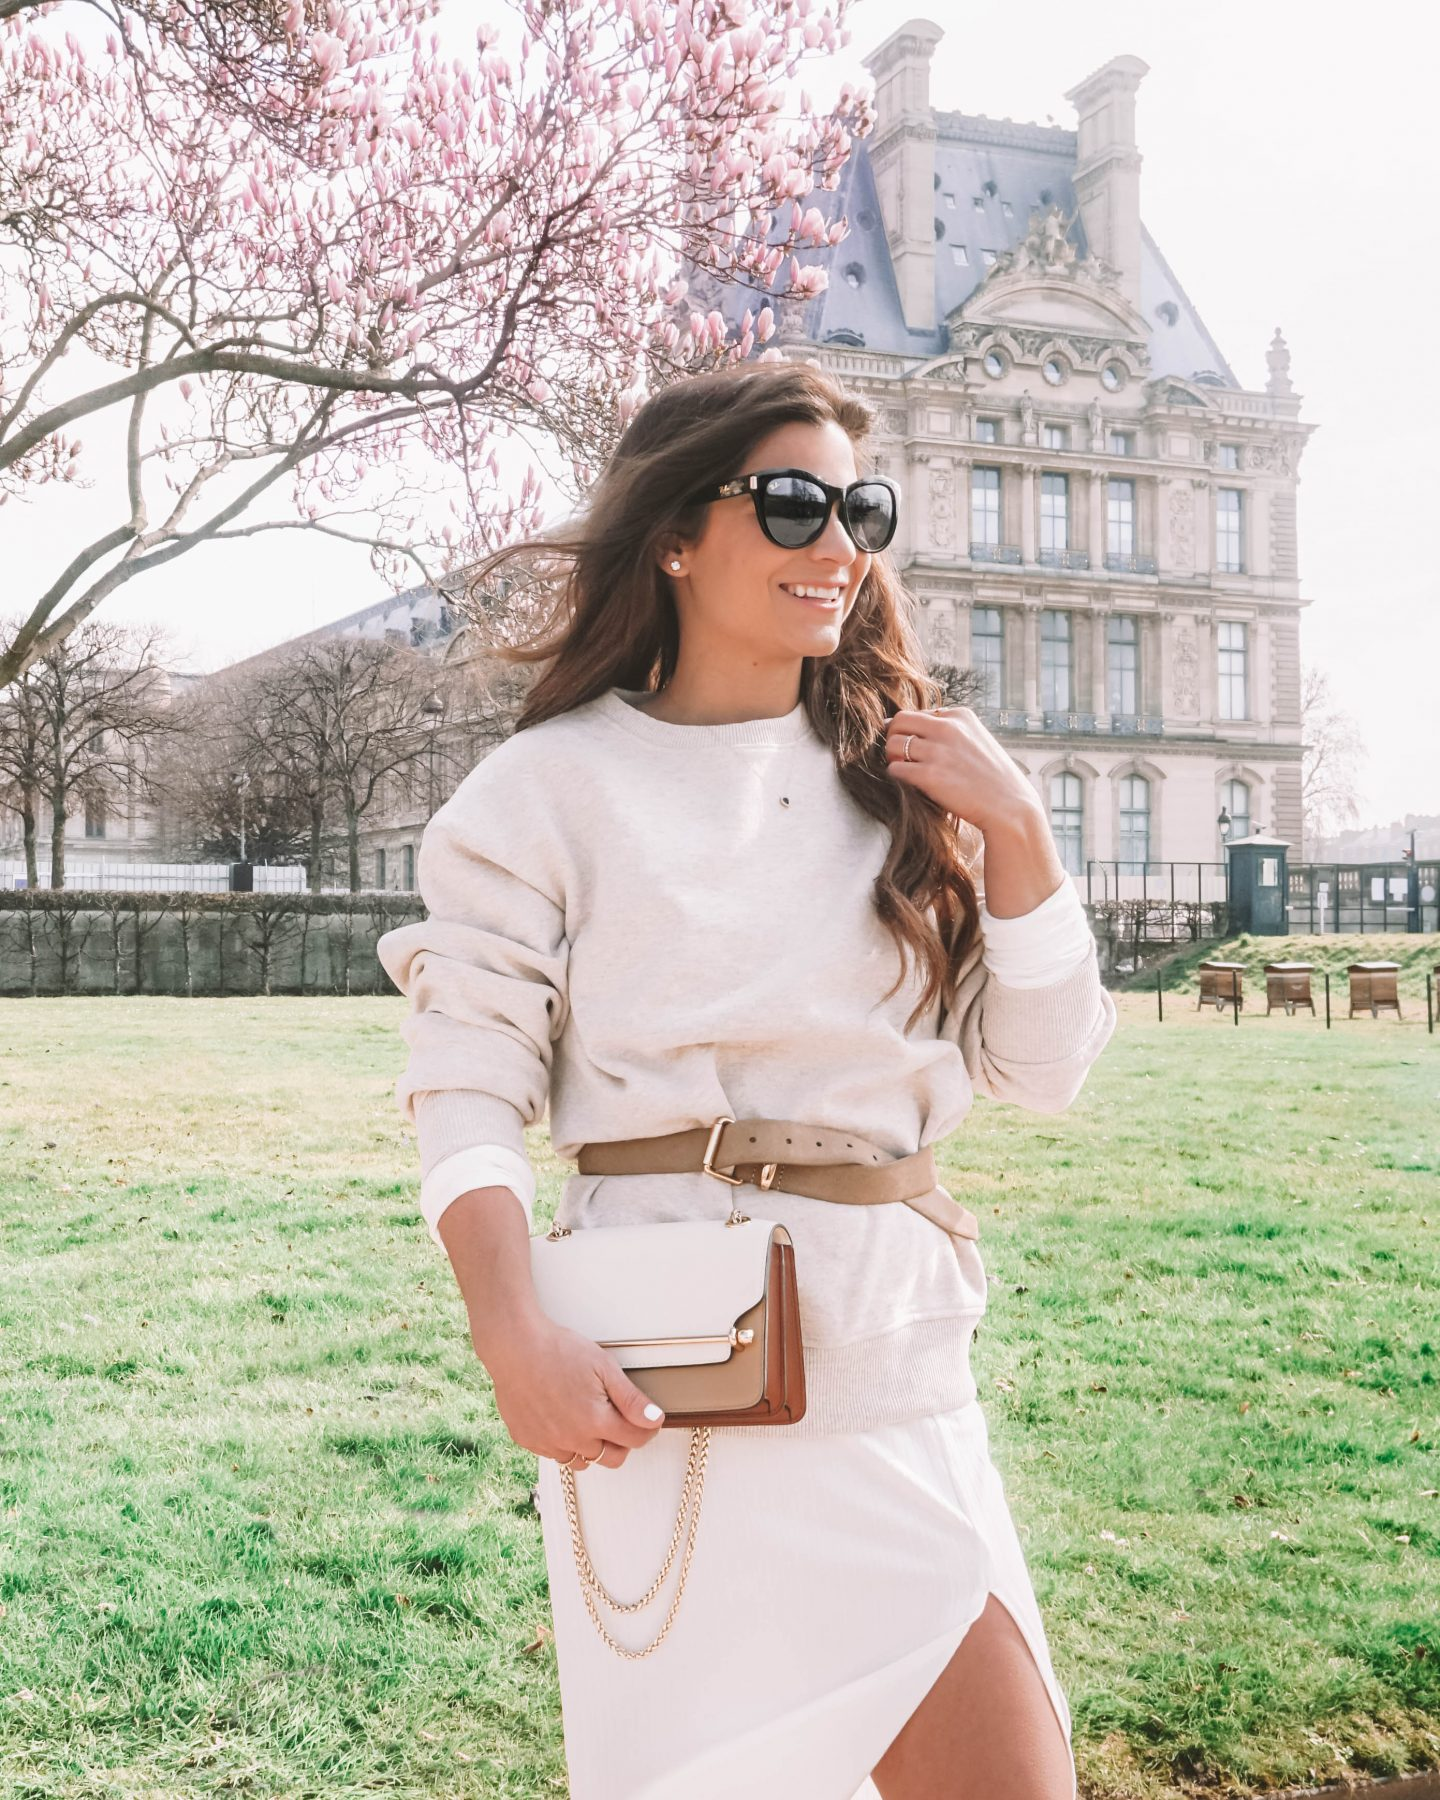 How to style a sweatshirt and look chic